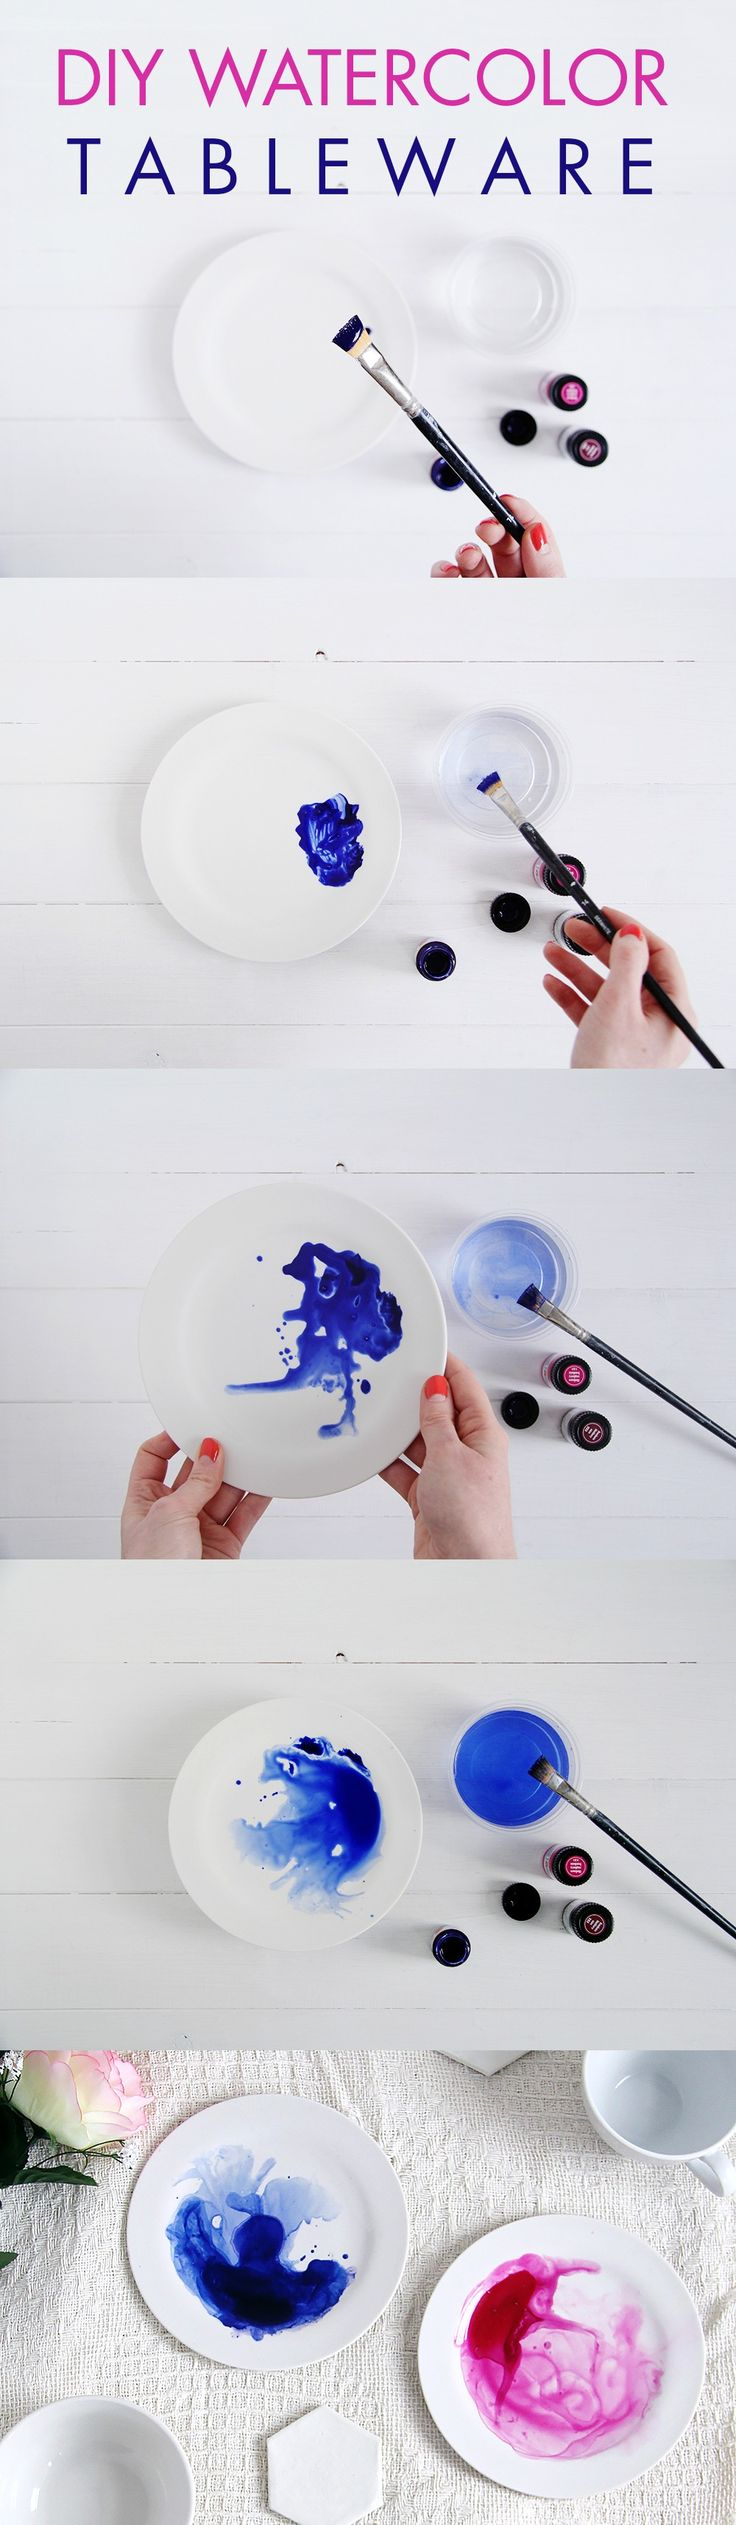 We adore how simple it is to make these lovely DIY watercolor plates, an amazing project shared on Fall for DIY. This homemade tableware set is a fantastic way to liven up white dishes, and it would make a fabulous gift for a friend!